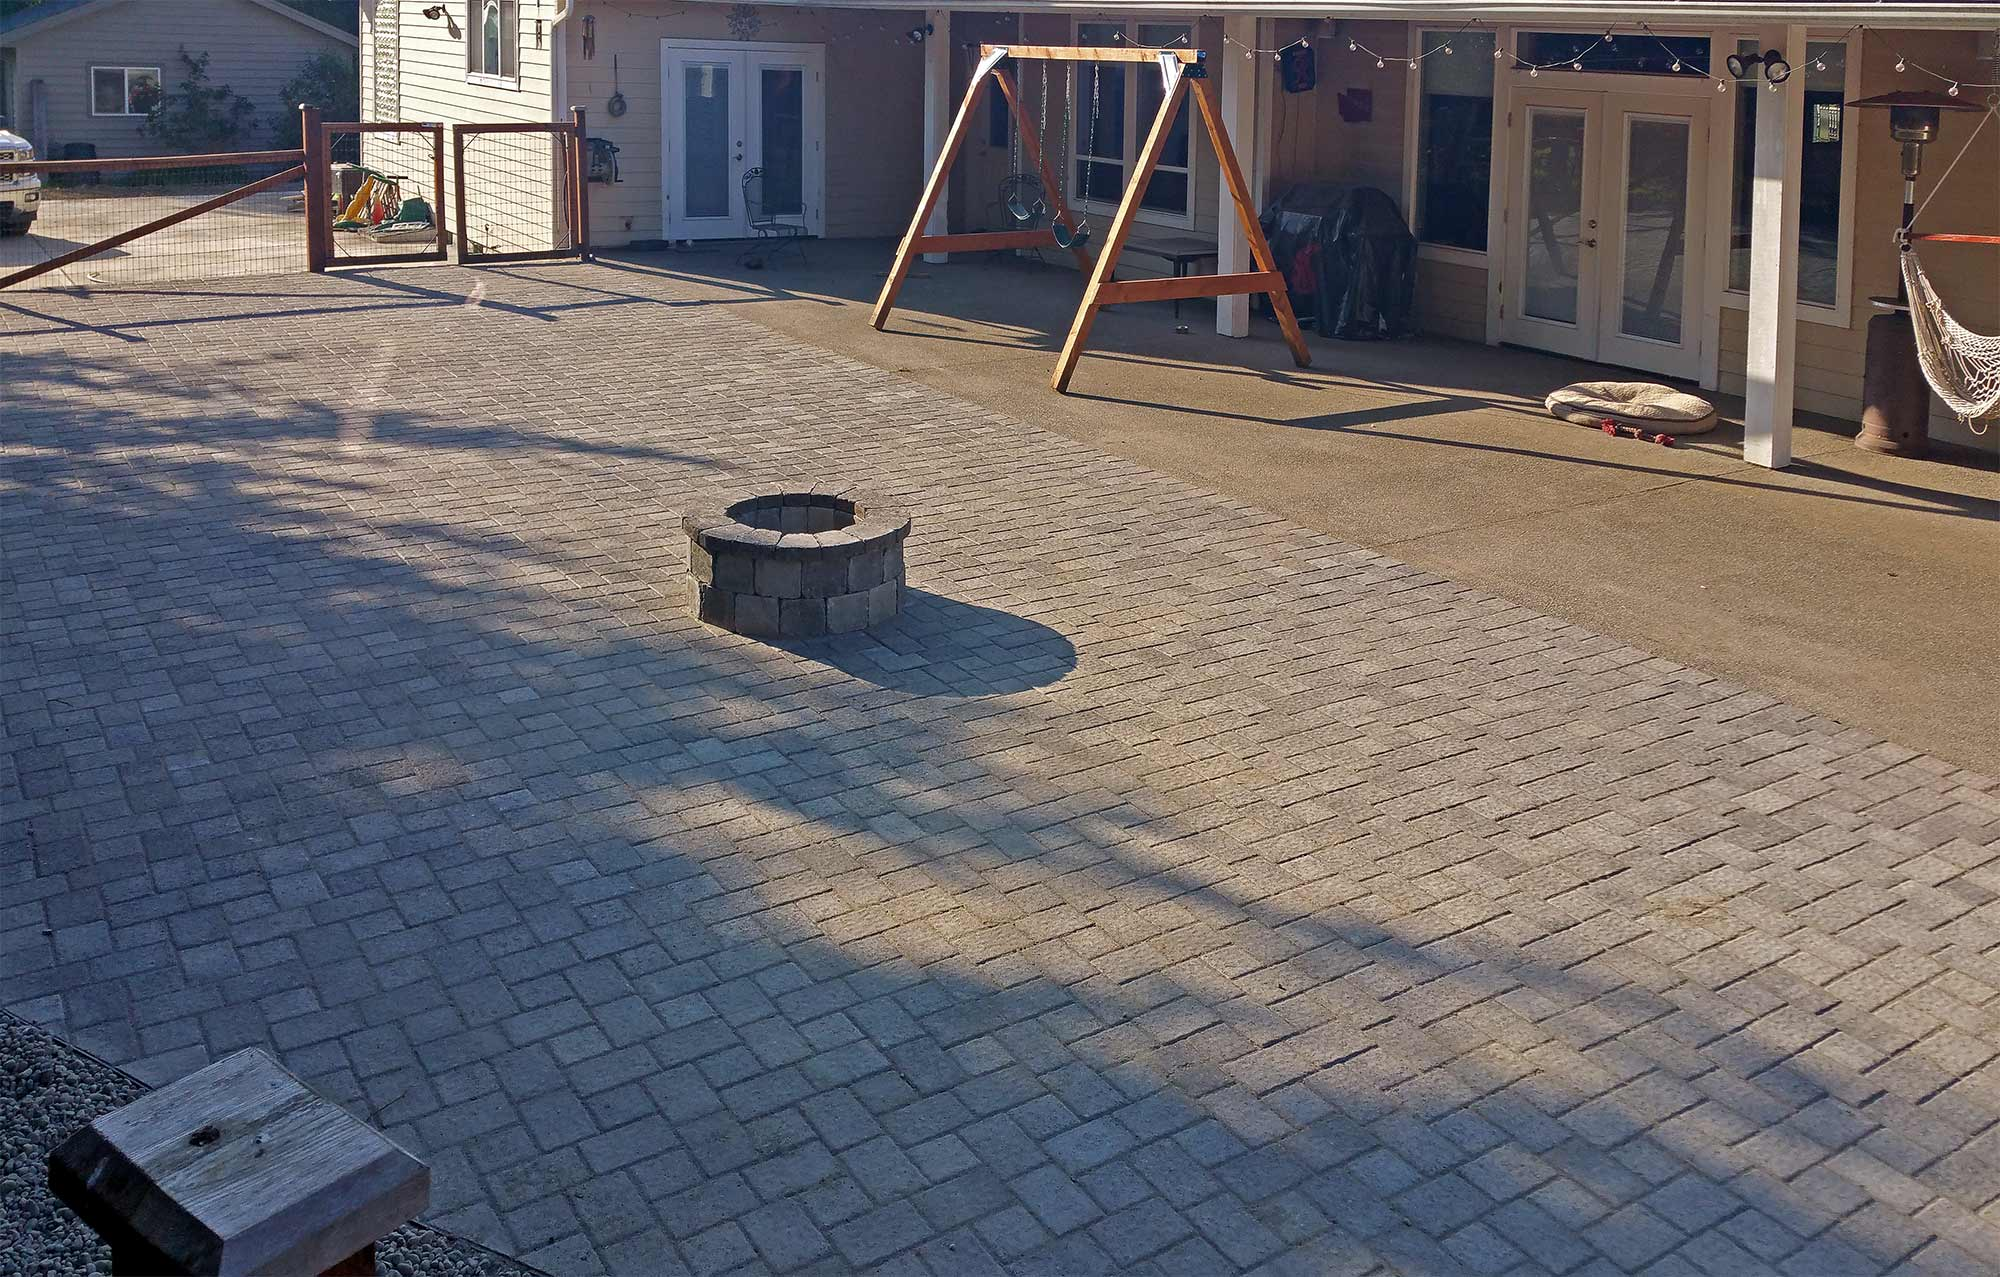 paver patio extension in boston harbor ajb landscaping u0026 fence